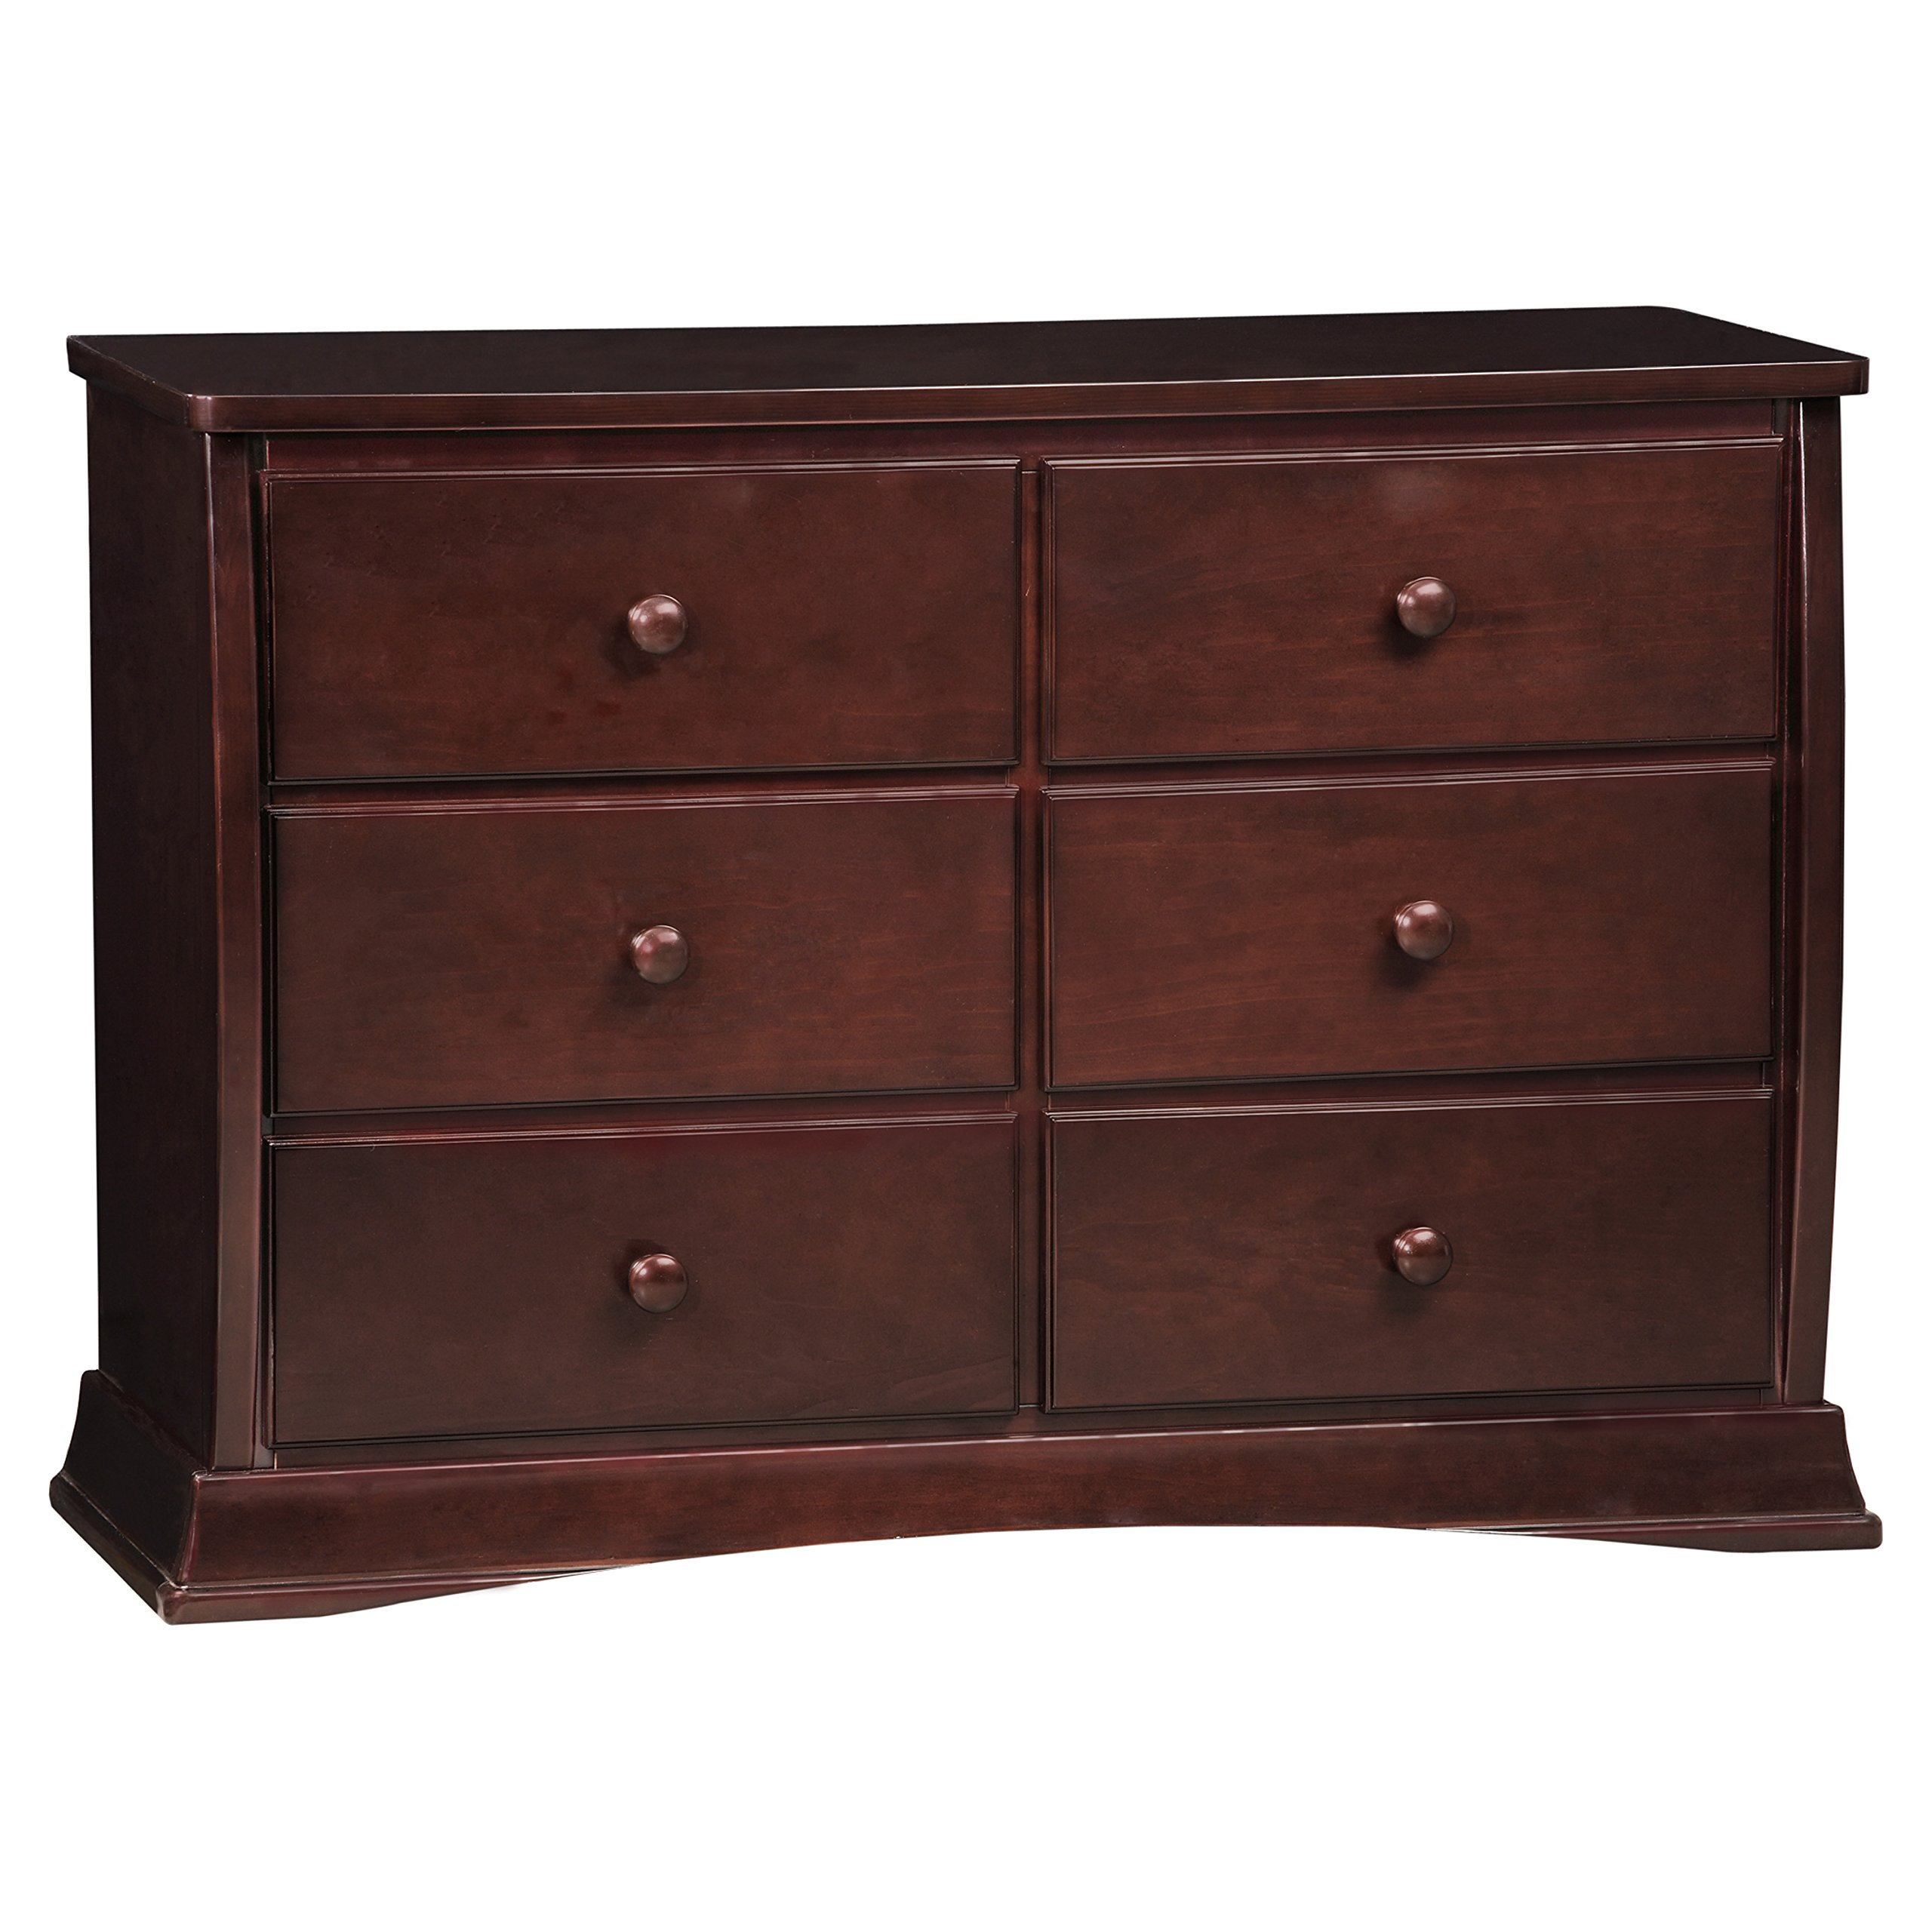 Delta Children Bentley Six Drawer Dresser, Black Cherry Espresso